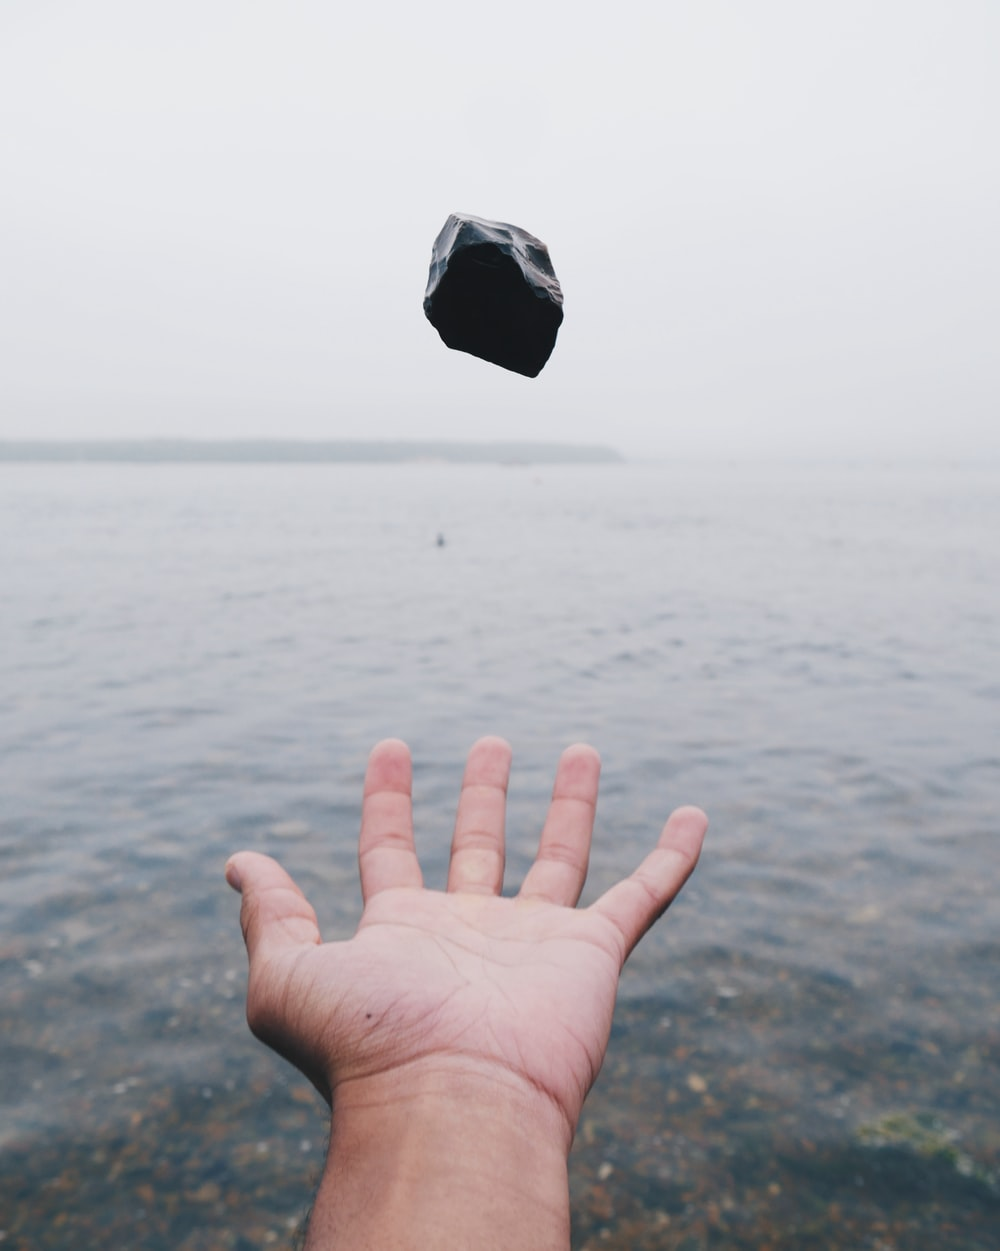 person throwing black stone on water